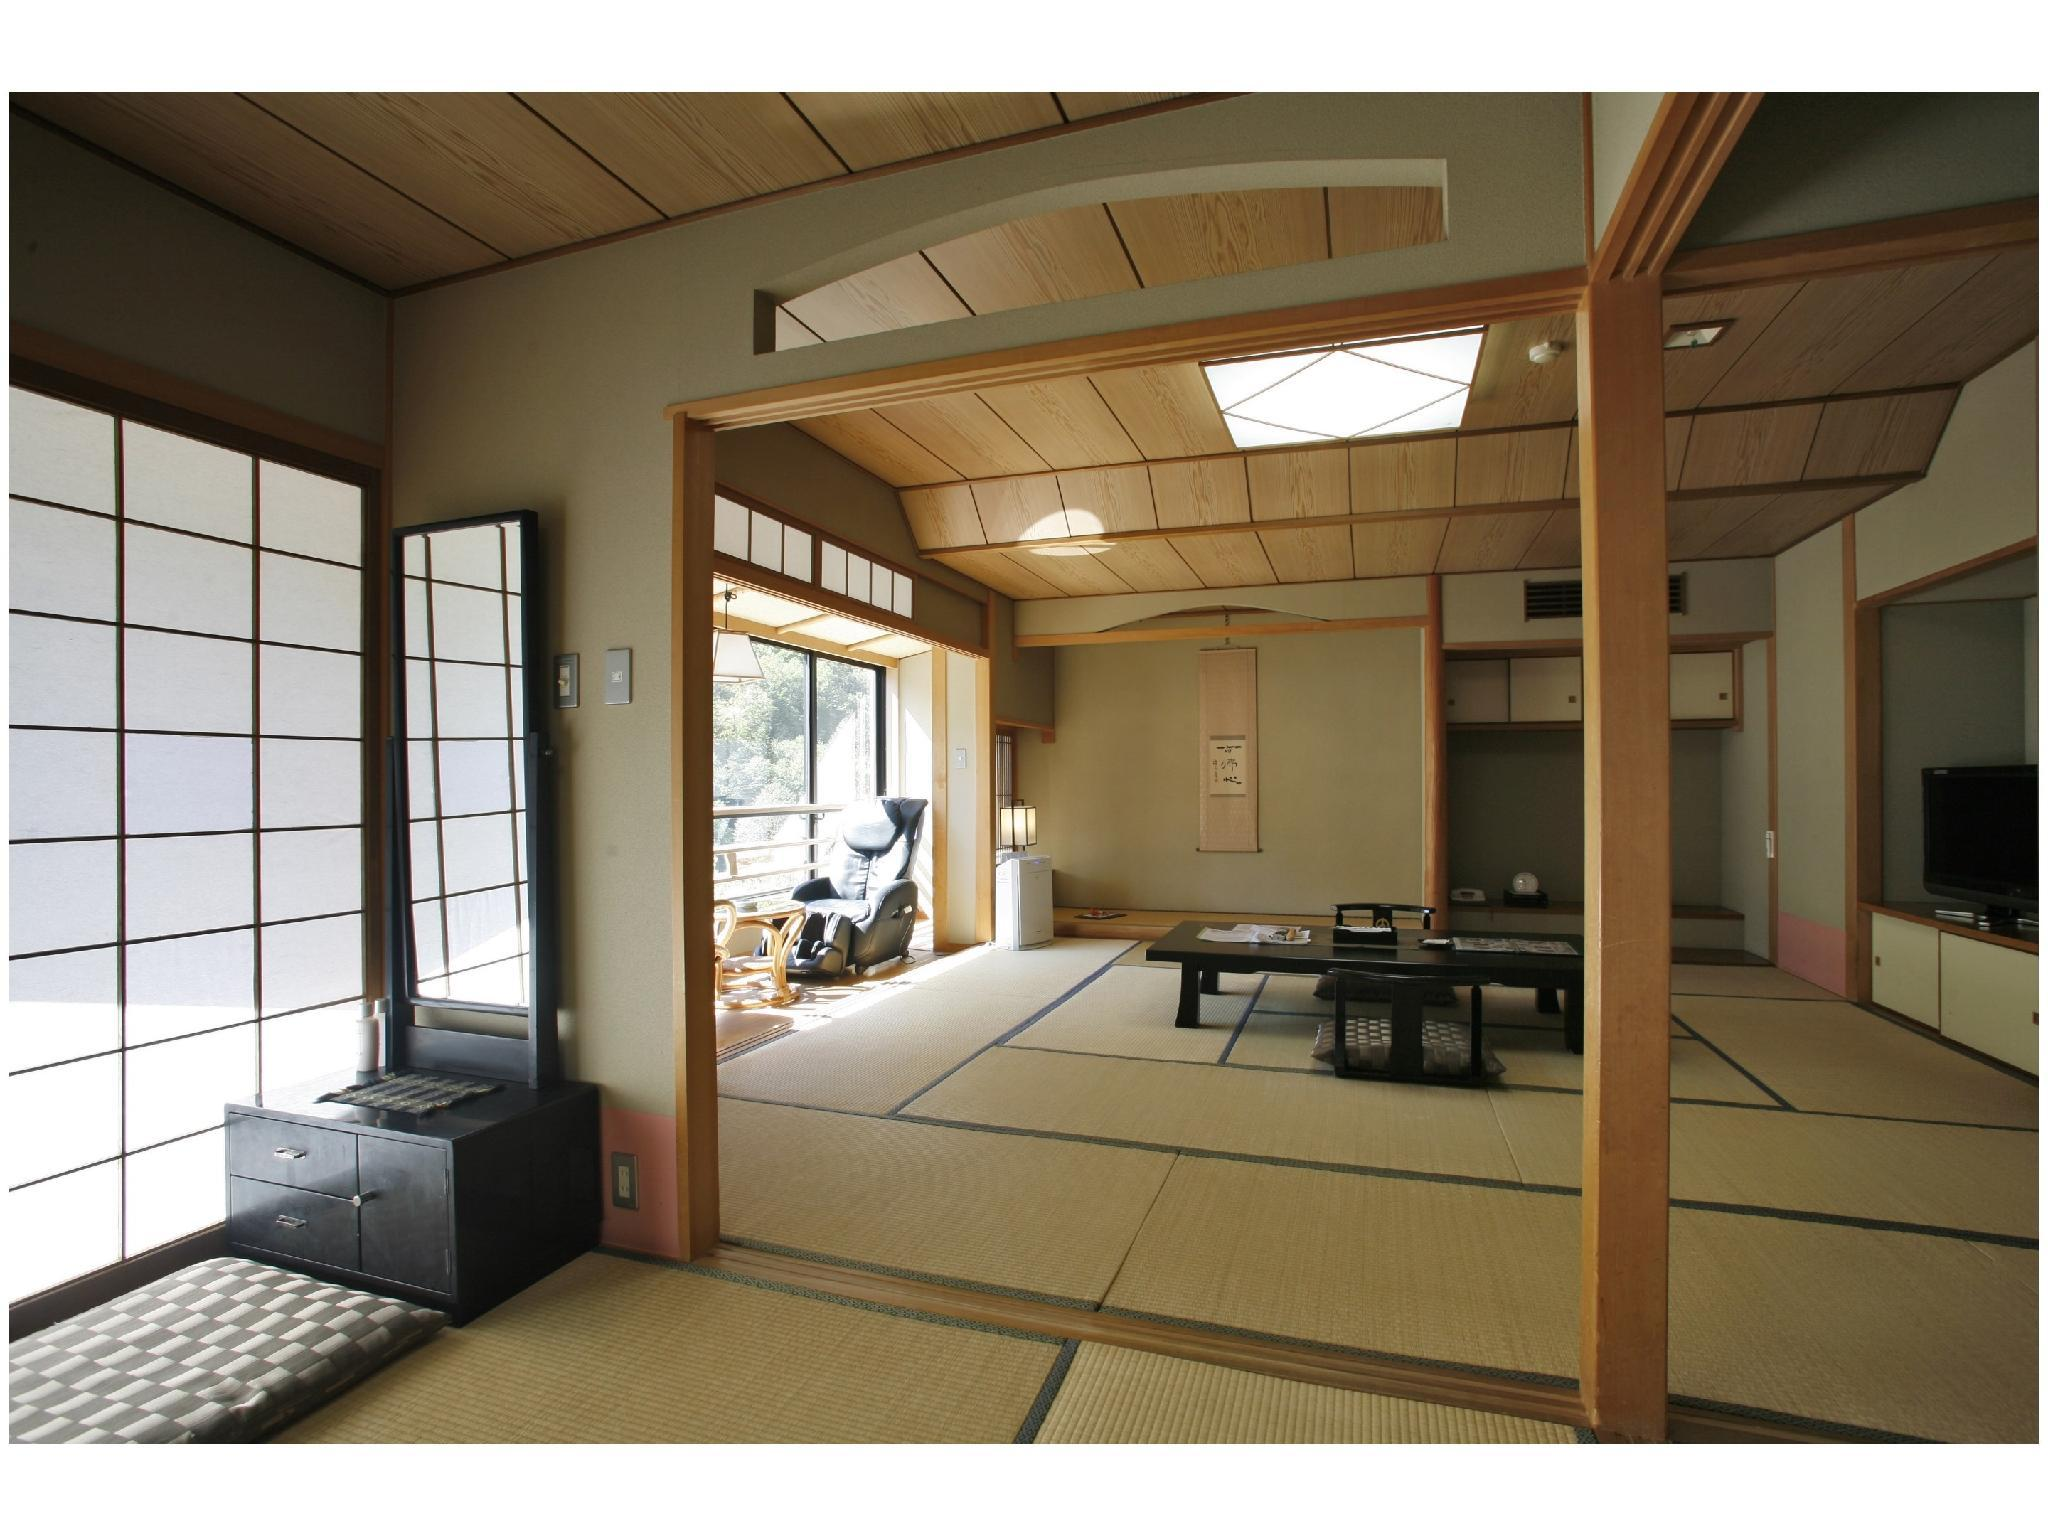 日式客房 - 禁菸 (Japanese Style Room - Non-Smoking)